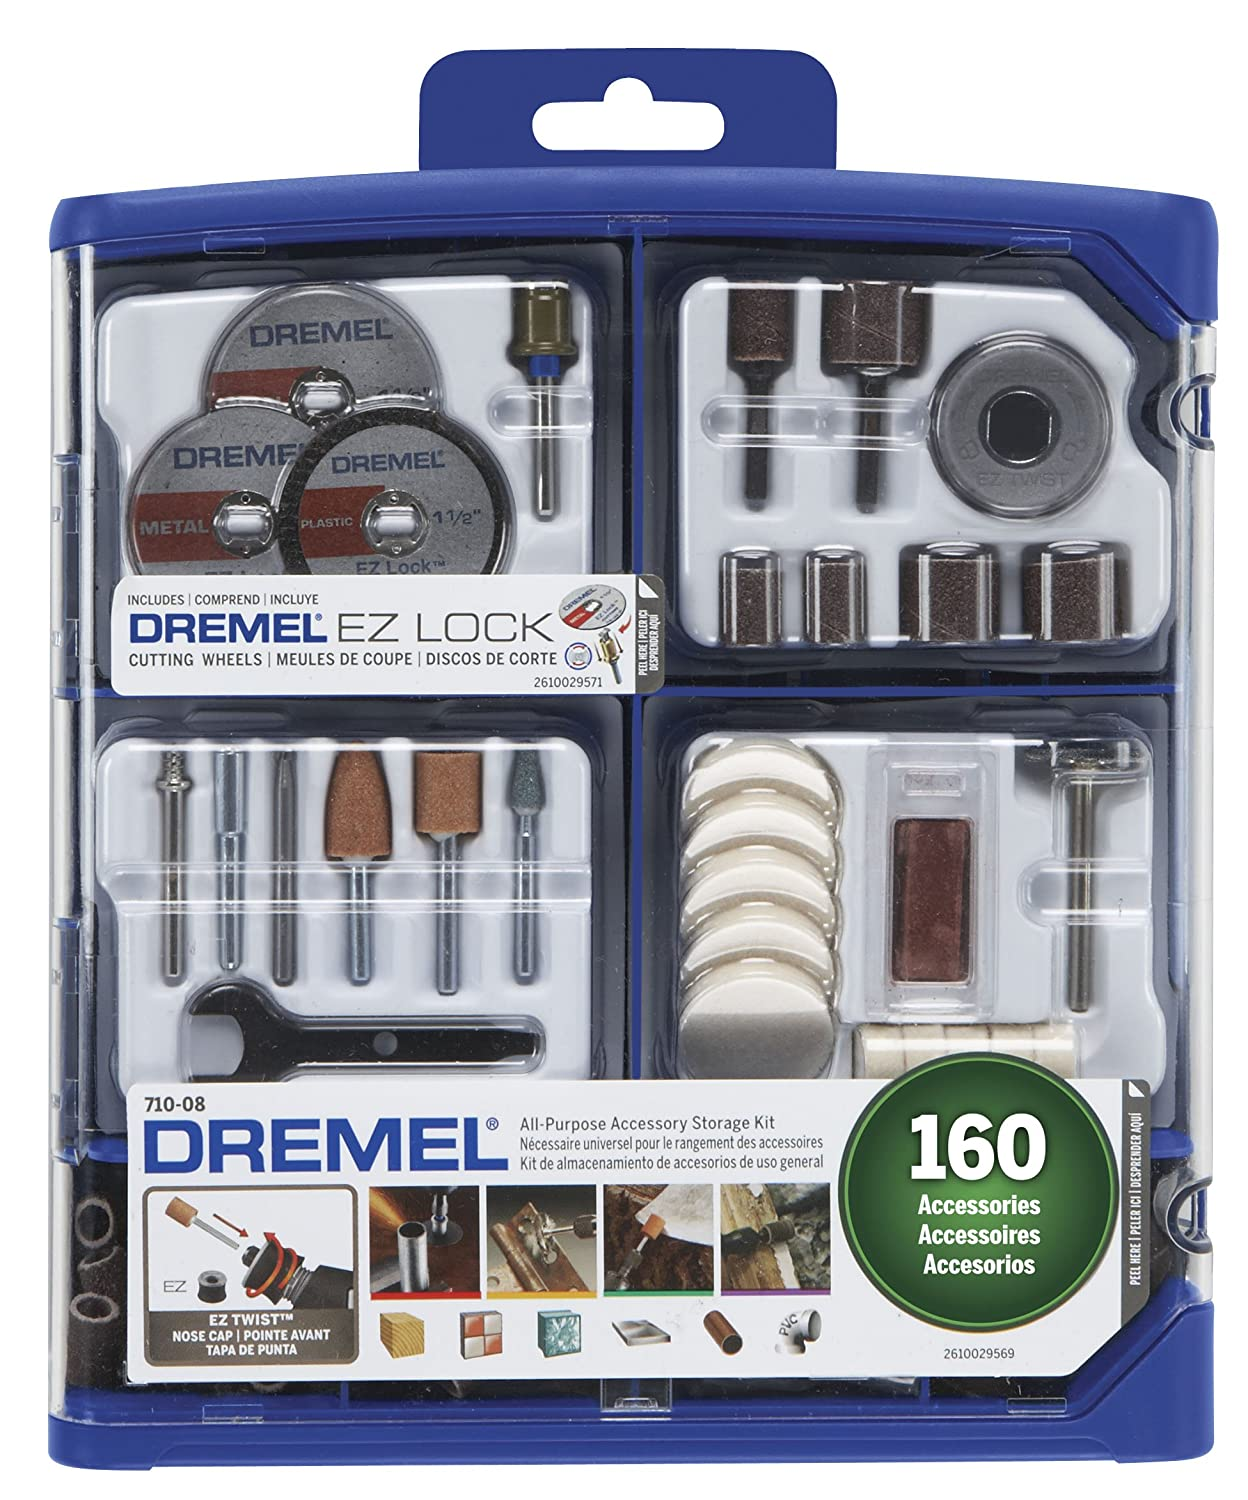 91XppR5umQL. SL1500  - Dremel 710-08 All-Purpose Rotary Accessory Kit, 160-Piece